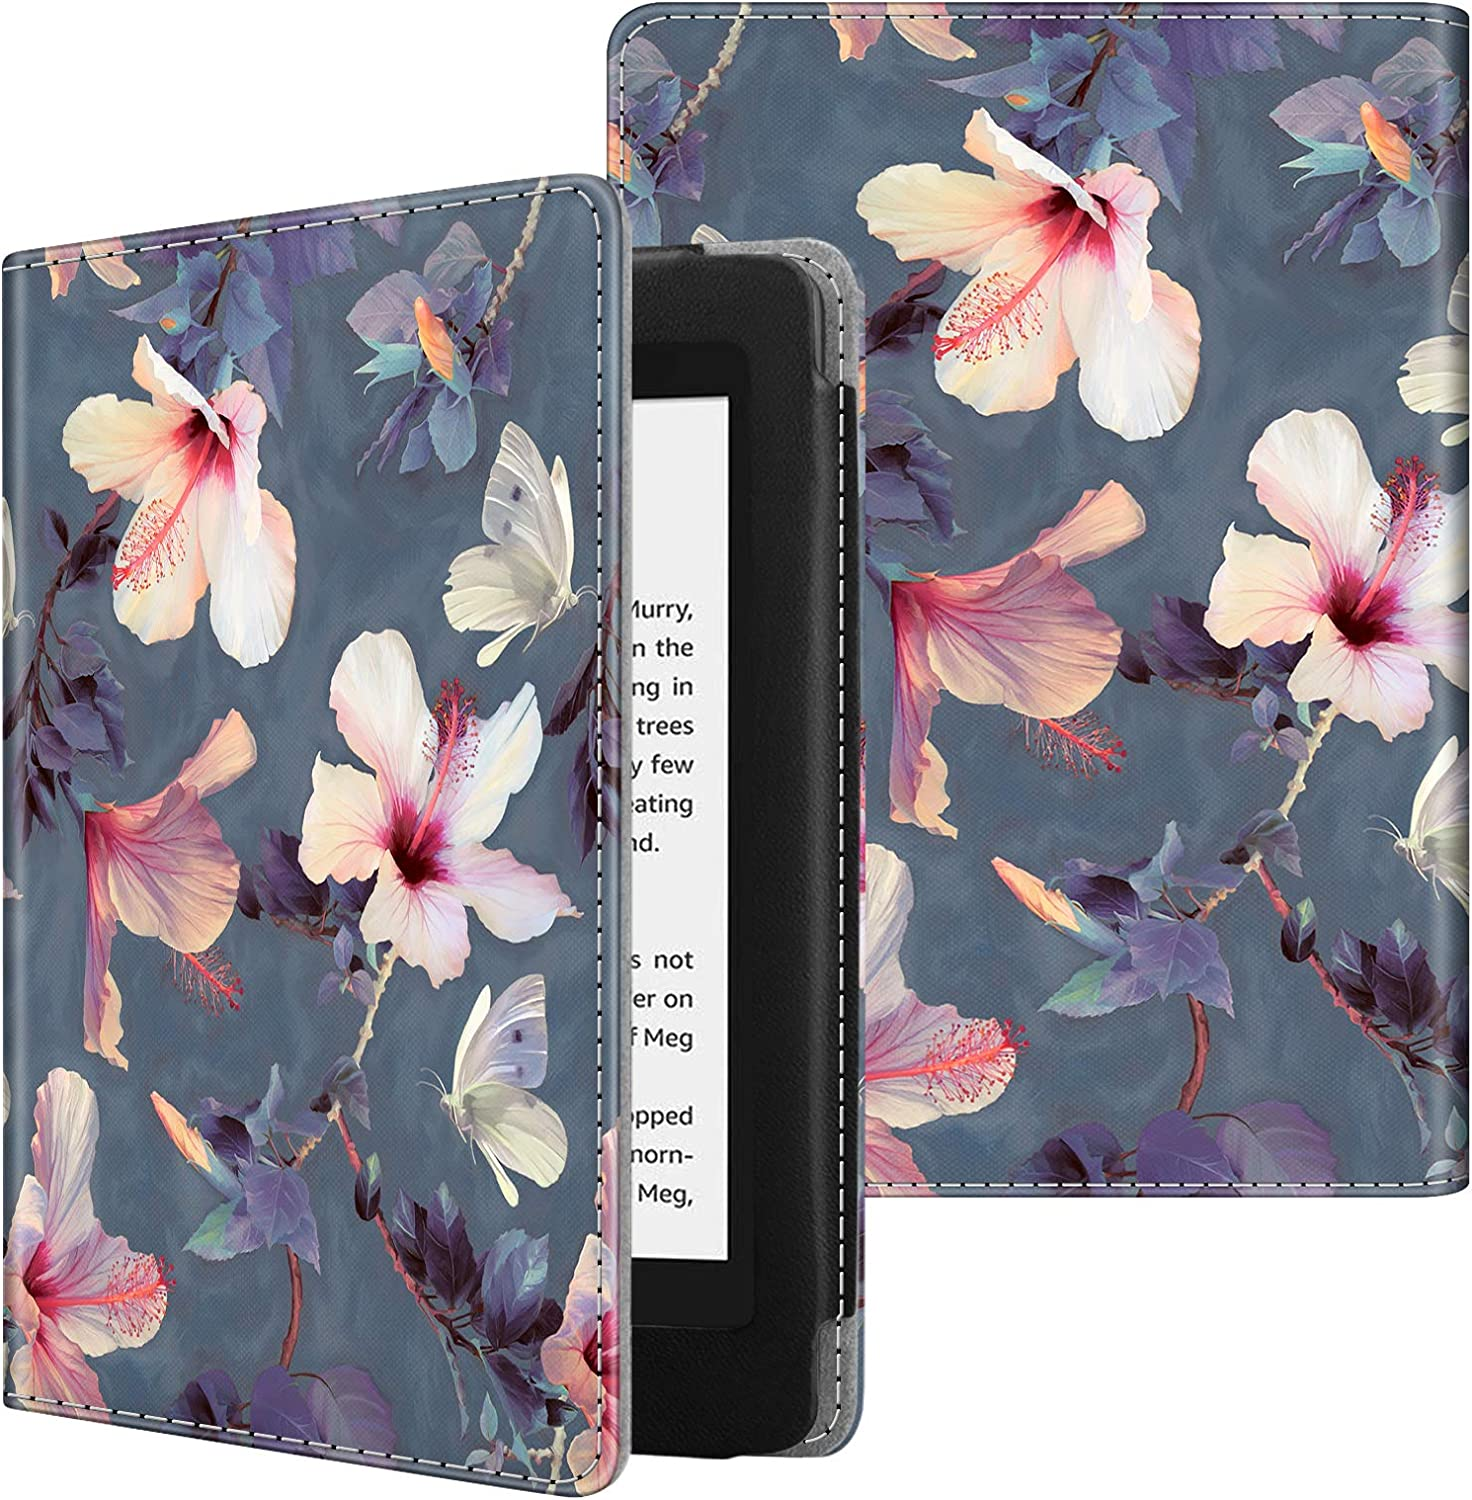 Fintie Folio Case for Kindle Paperwhite (Fits All-New 10th Generation 2018 / All Paperwhite Generations) - Book Style Vegan Leather Shockproof Cover with Auto Sleep/Wake, Blooming Hibiscus